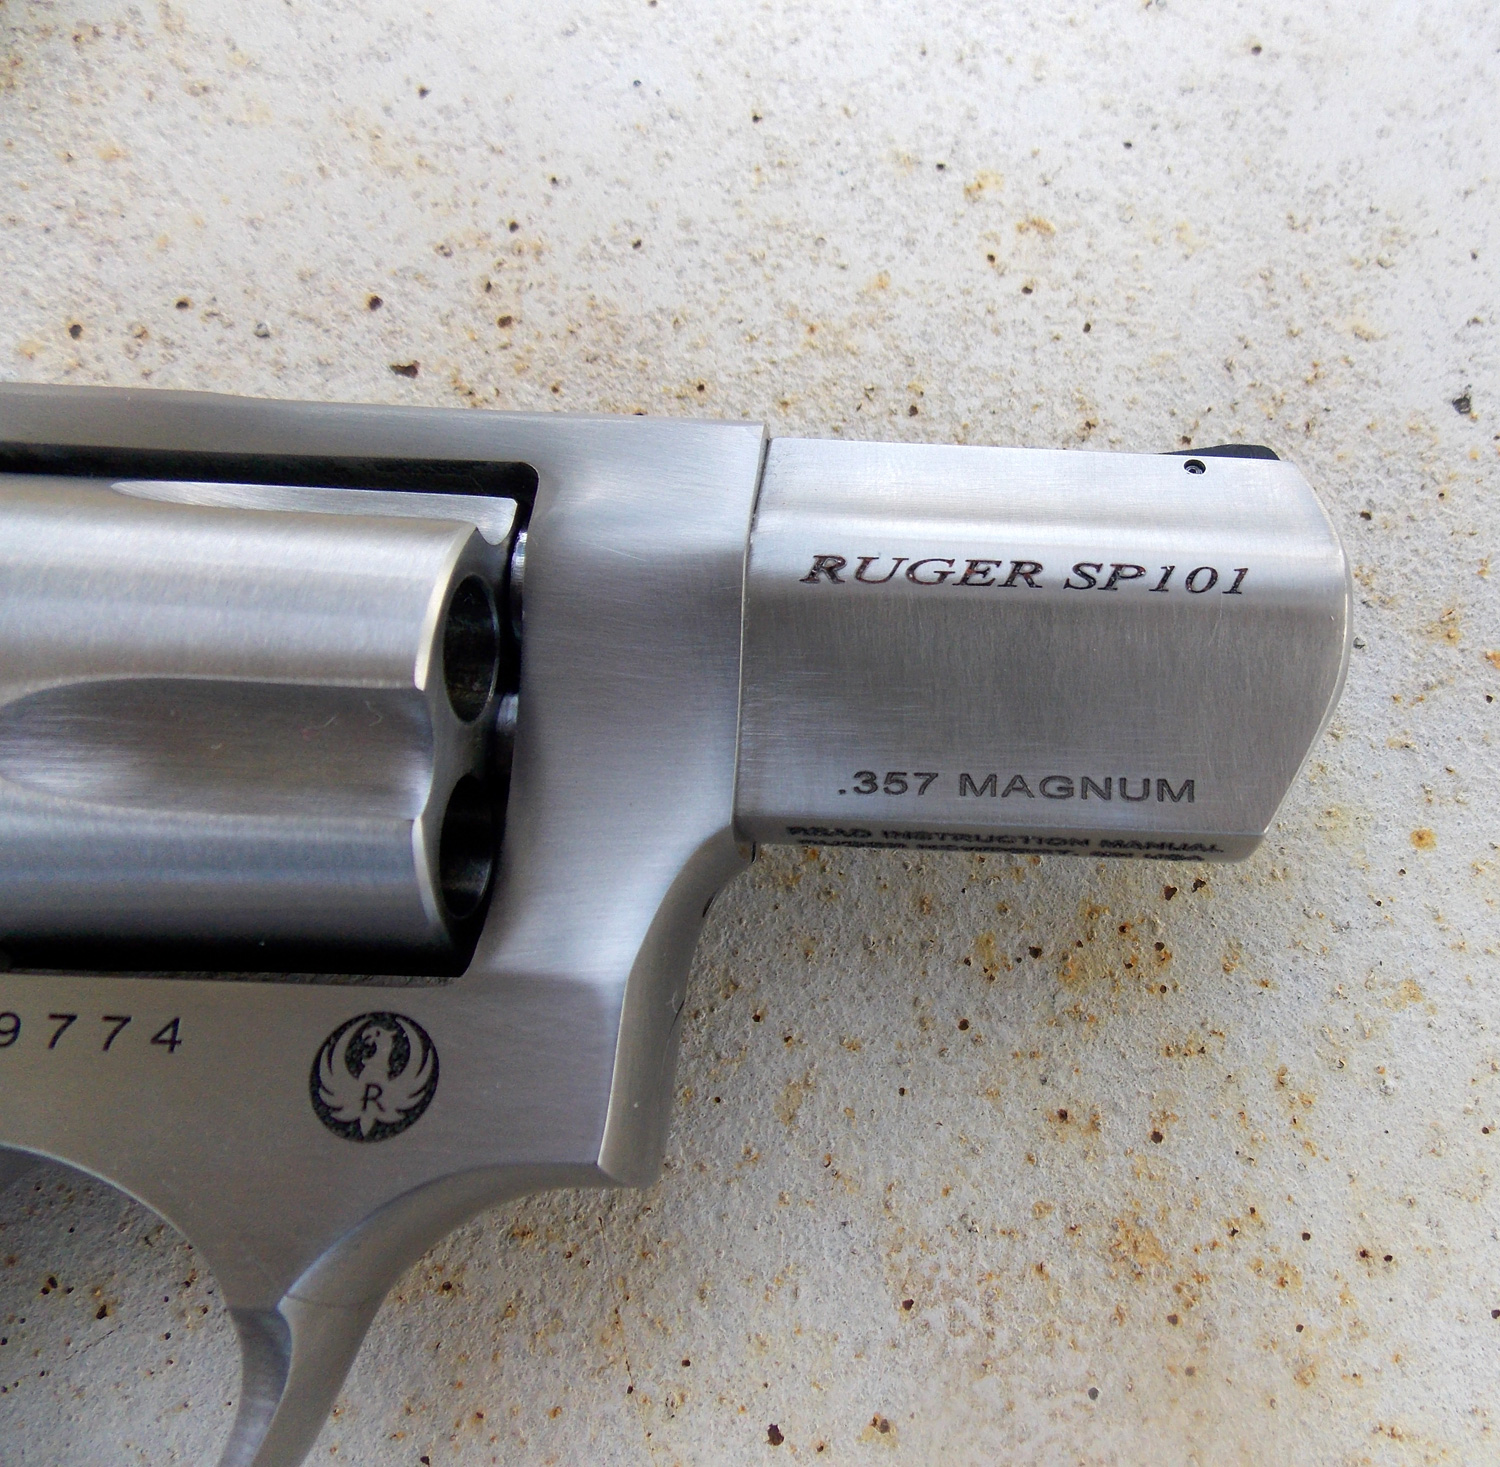 Ruger SP101 in .357 Magnum barrel detail